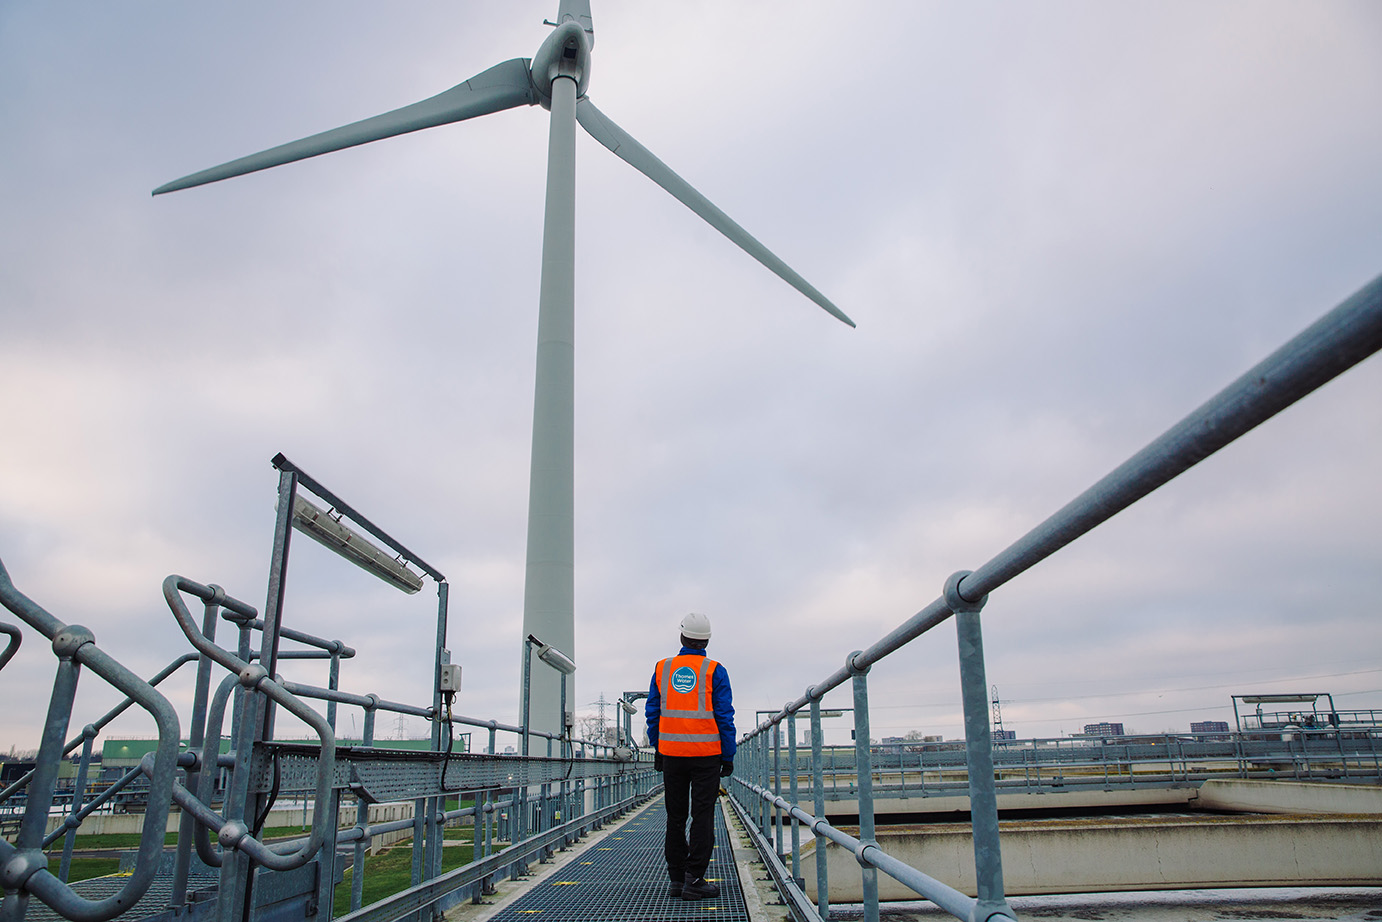 A man in a orange hi-vis looks at a wind turbine